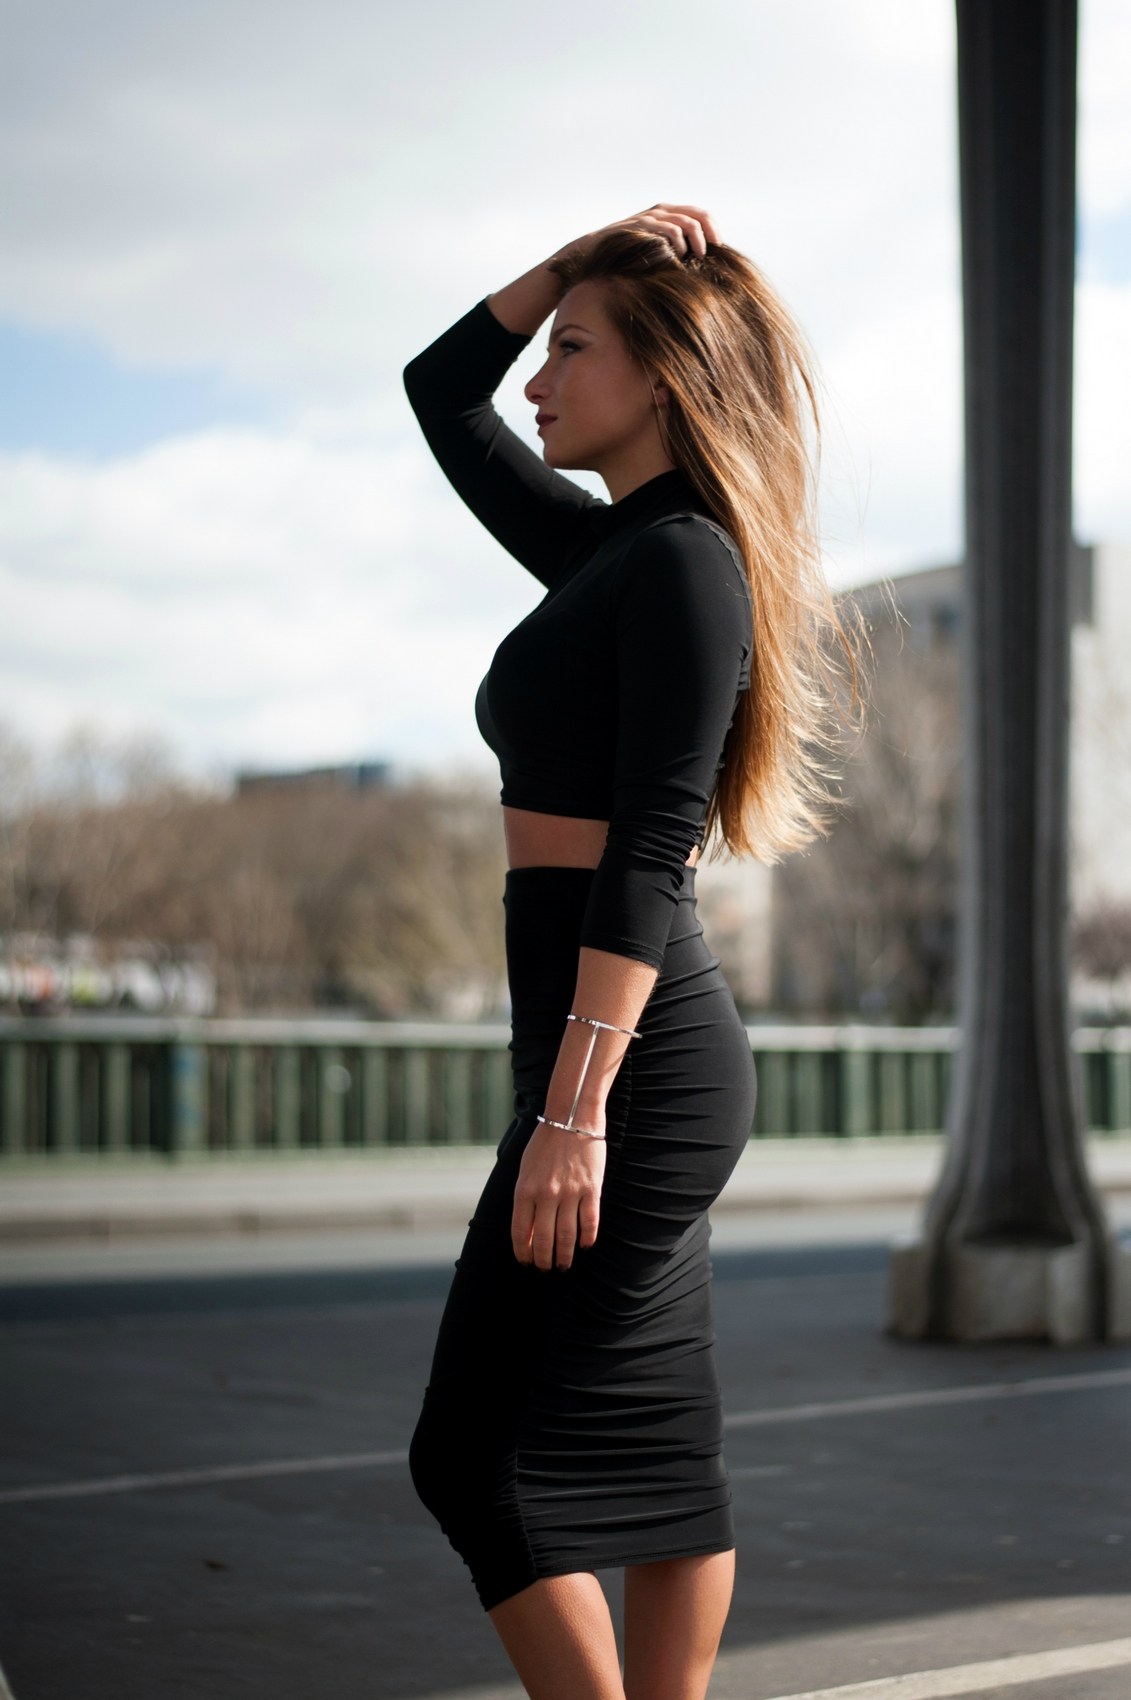 Minimalist monday mm x boohoo la minute fashion by melody - Ensemble femme jupe et haut ...